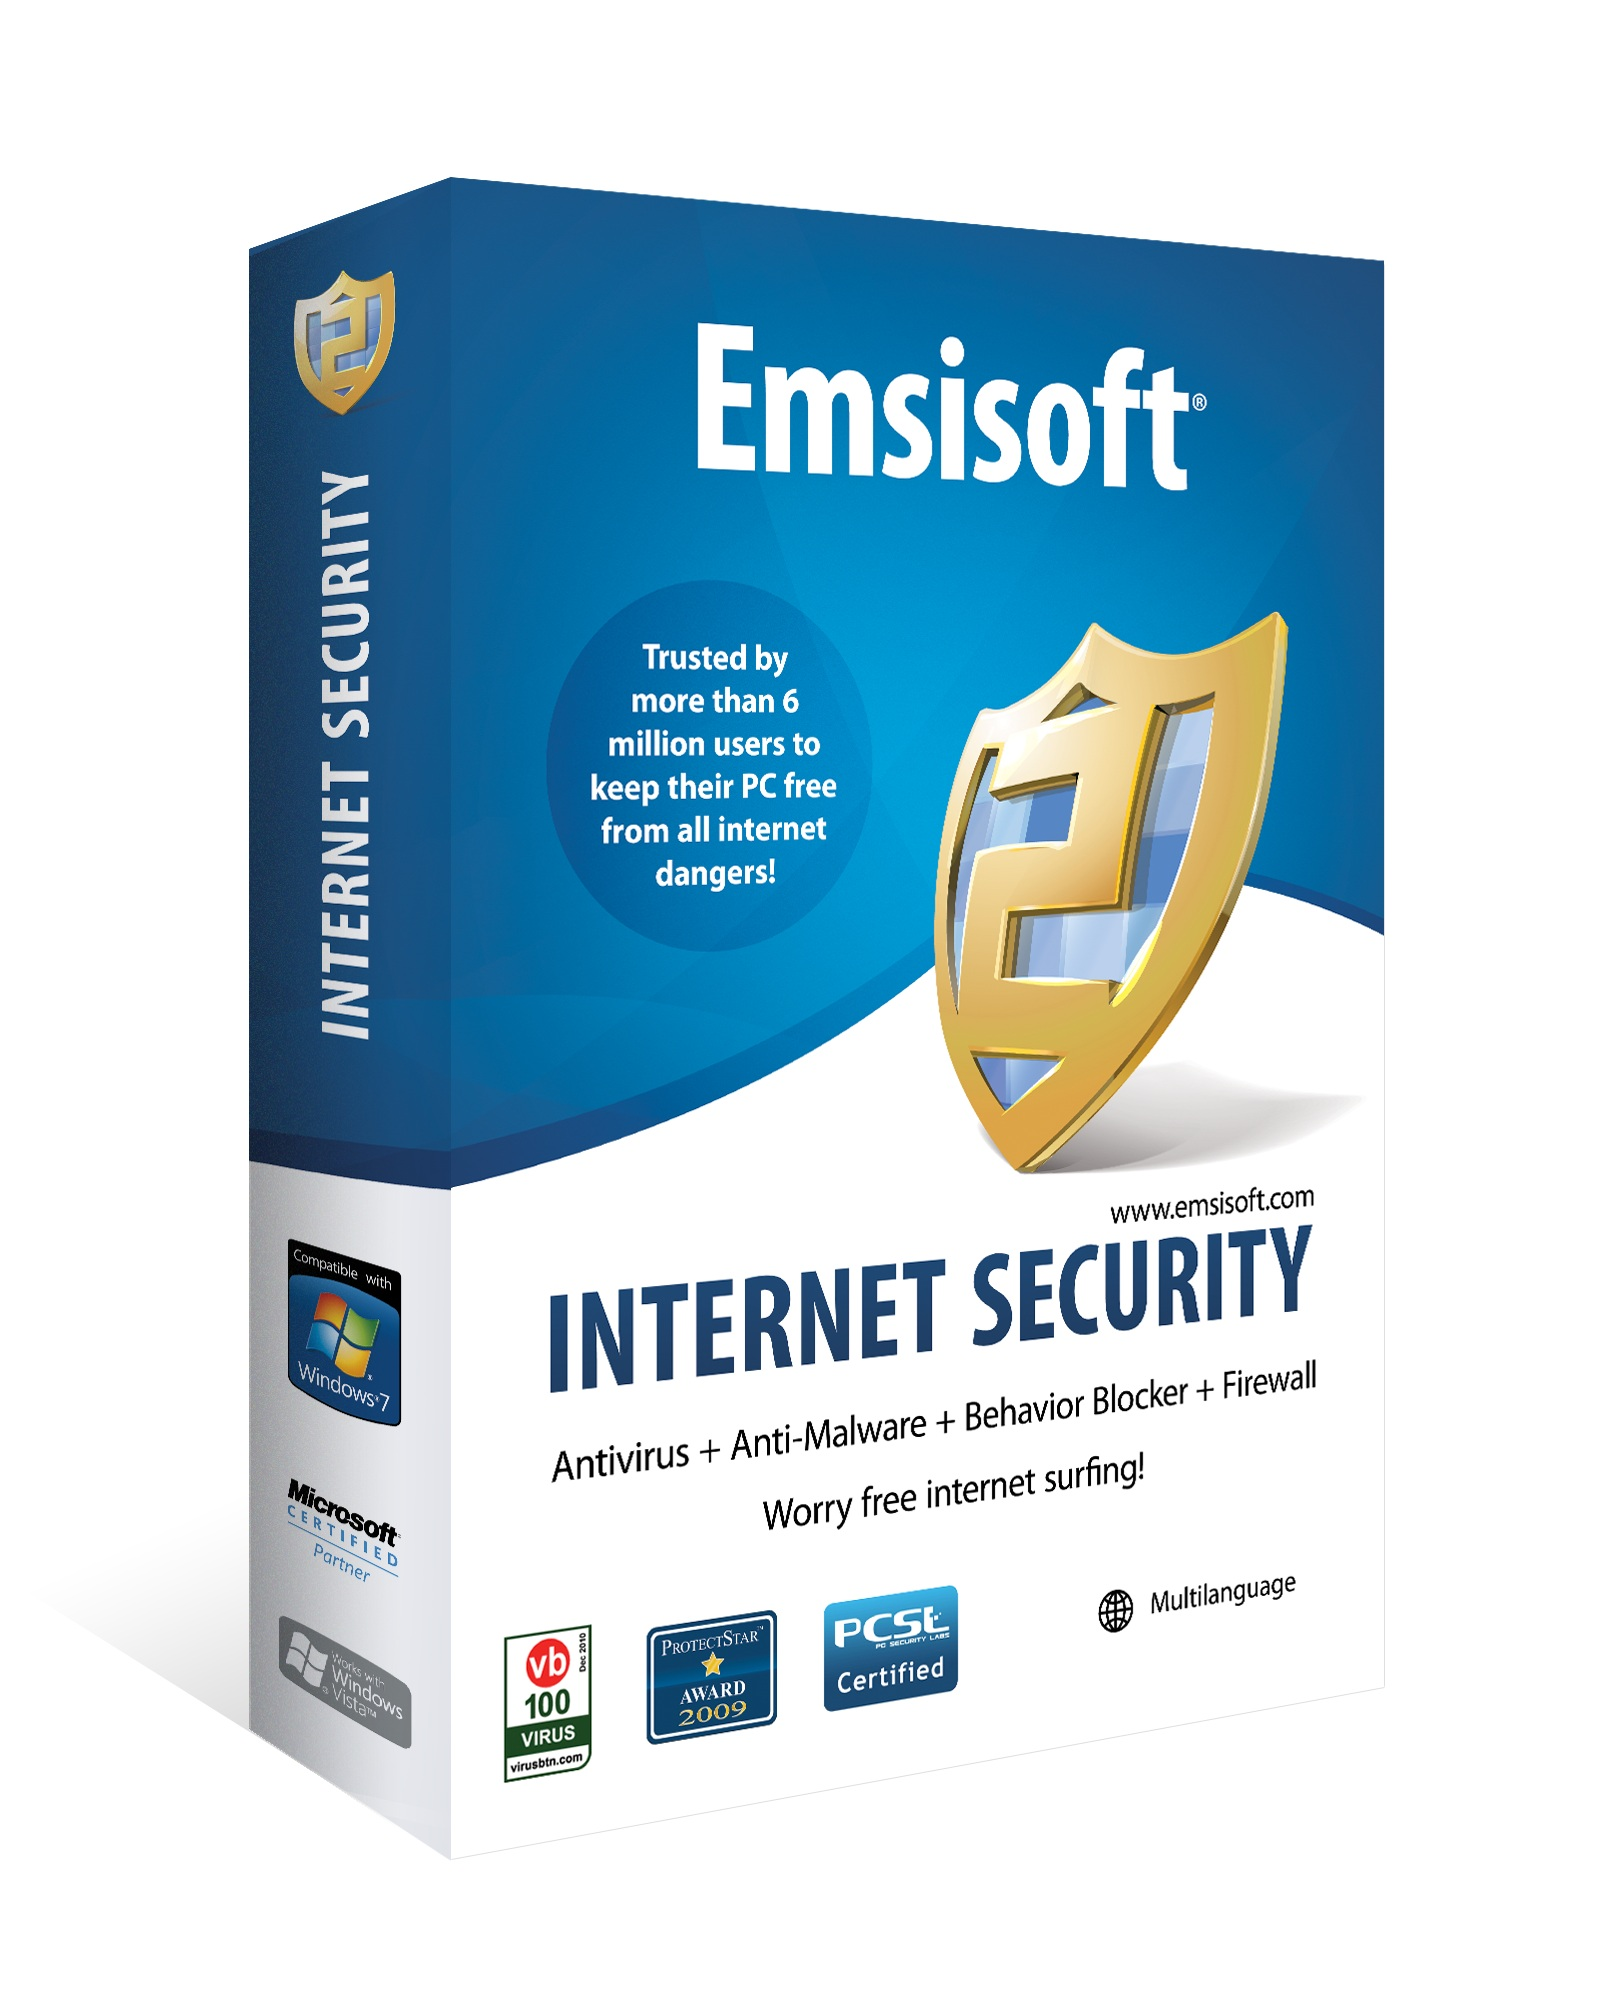 Emsisoft Anti-Malware 7.0.0.18 Final.